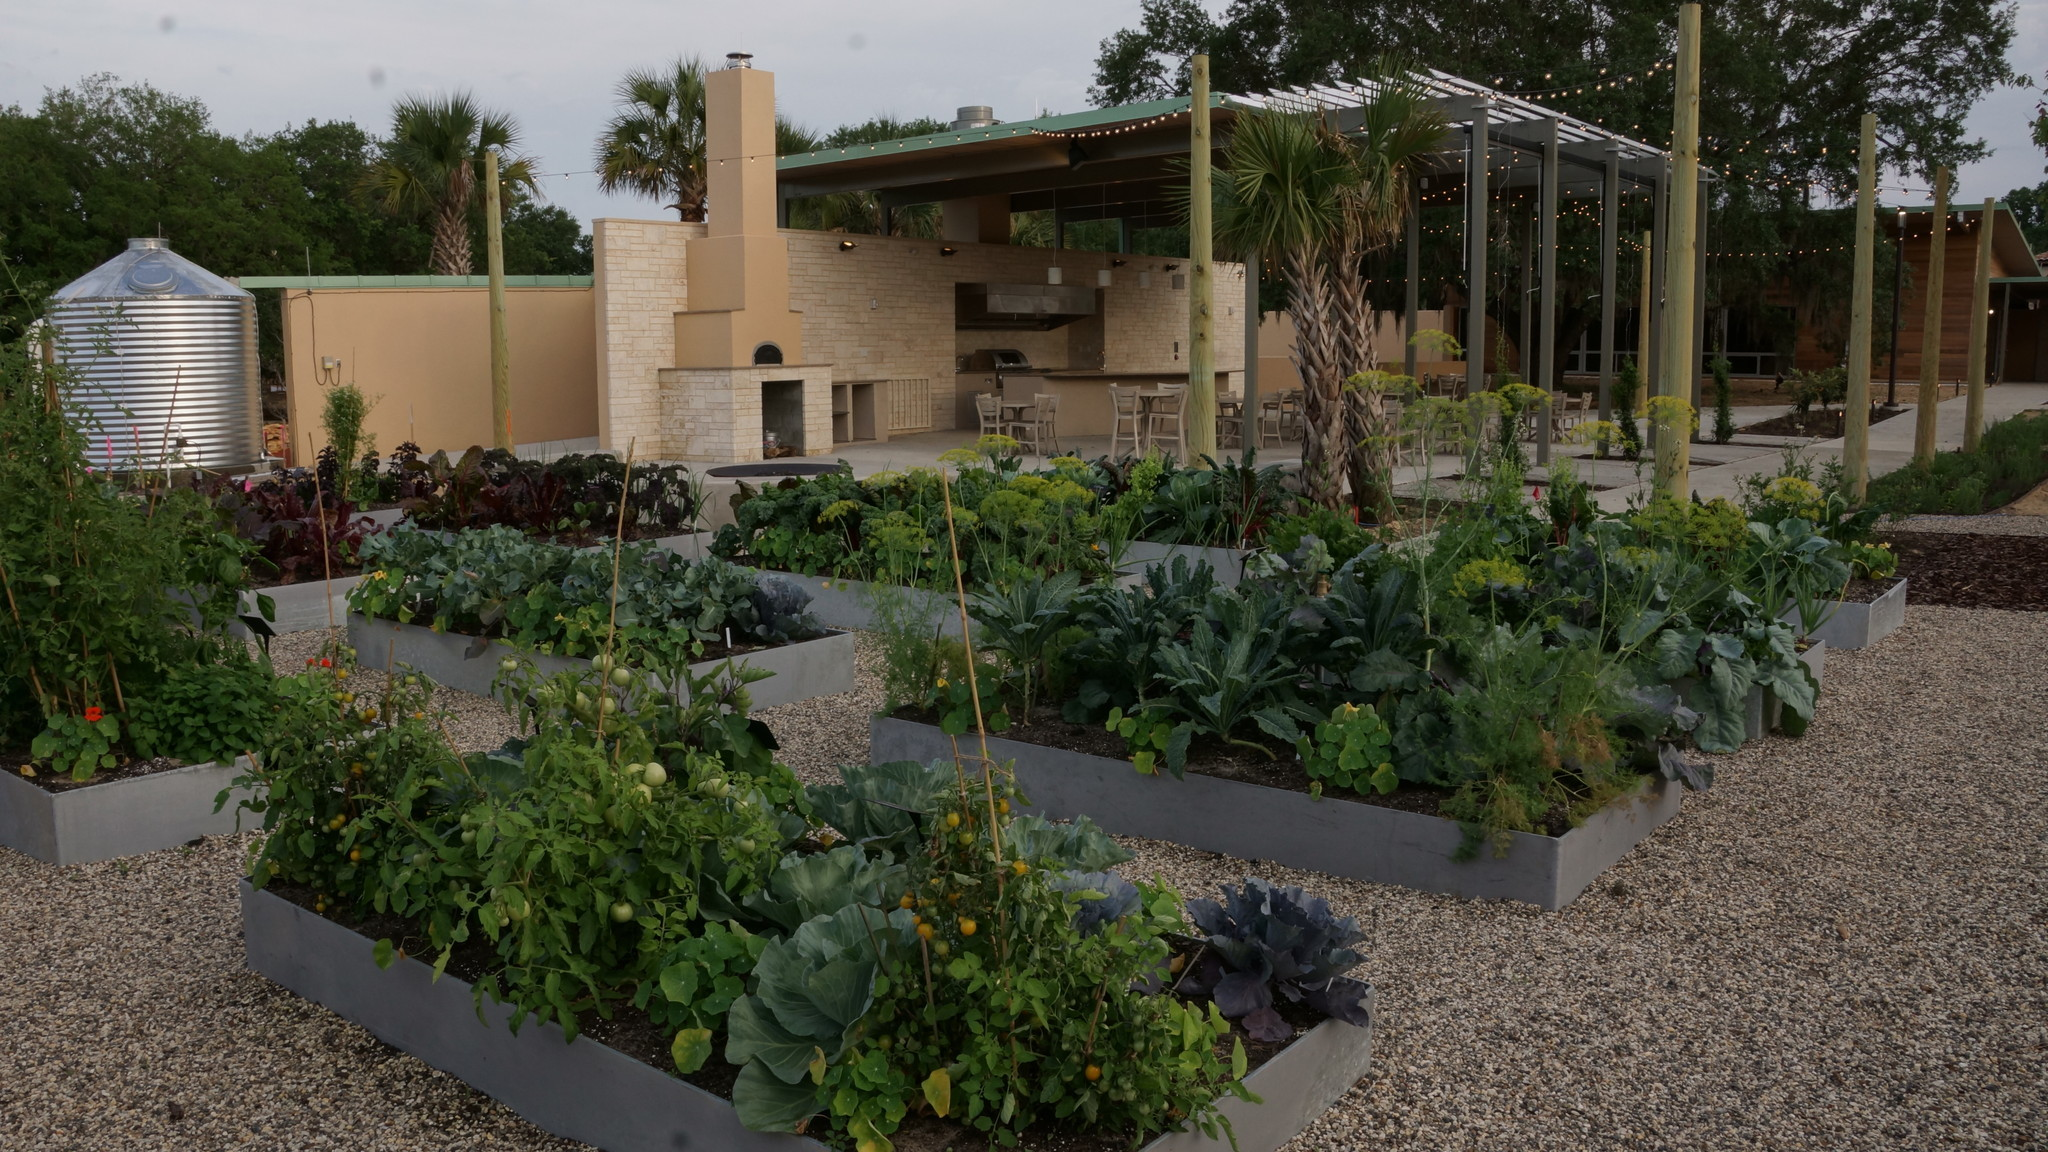 Explore Bok Towers new kitchen edible garden with cooking demo